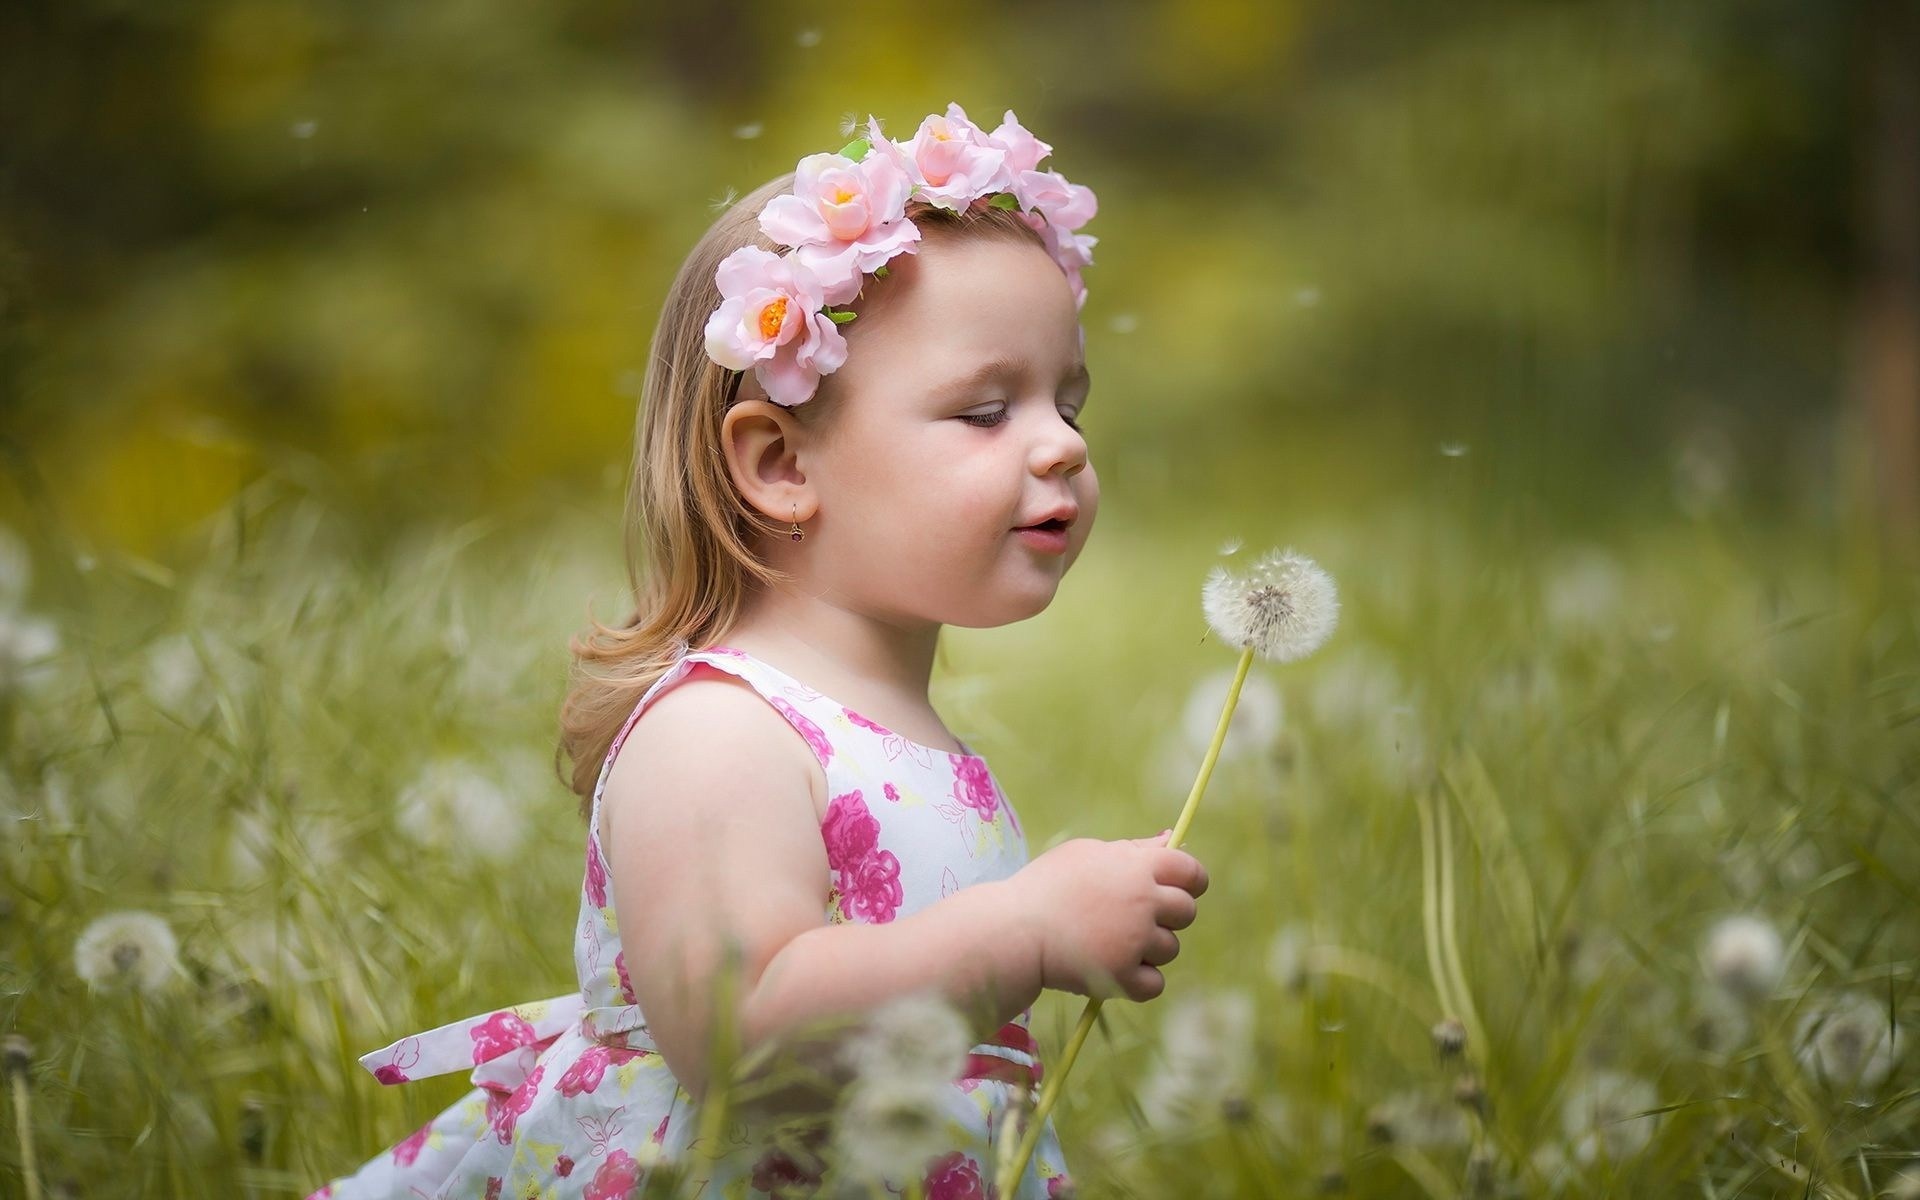 Beautiful Baby Girl Hd Wallpapers 1080p Yokwallpapers - Cute Babies With Flowers , HD Wallpaper & Backgrounds